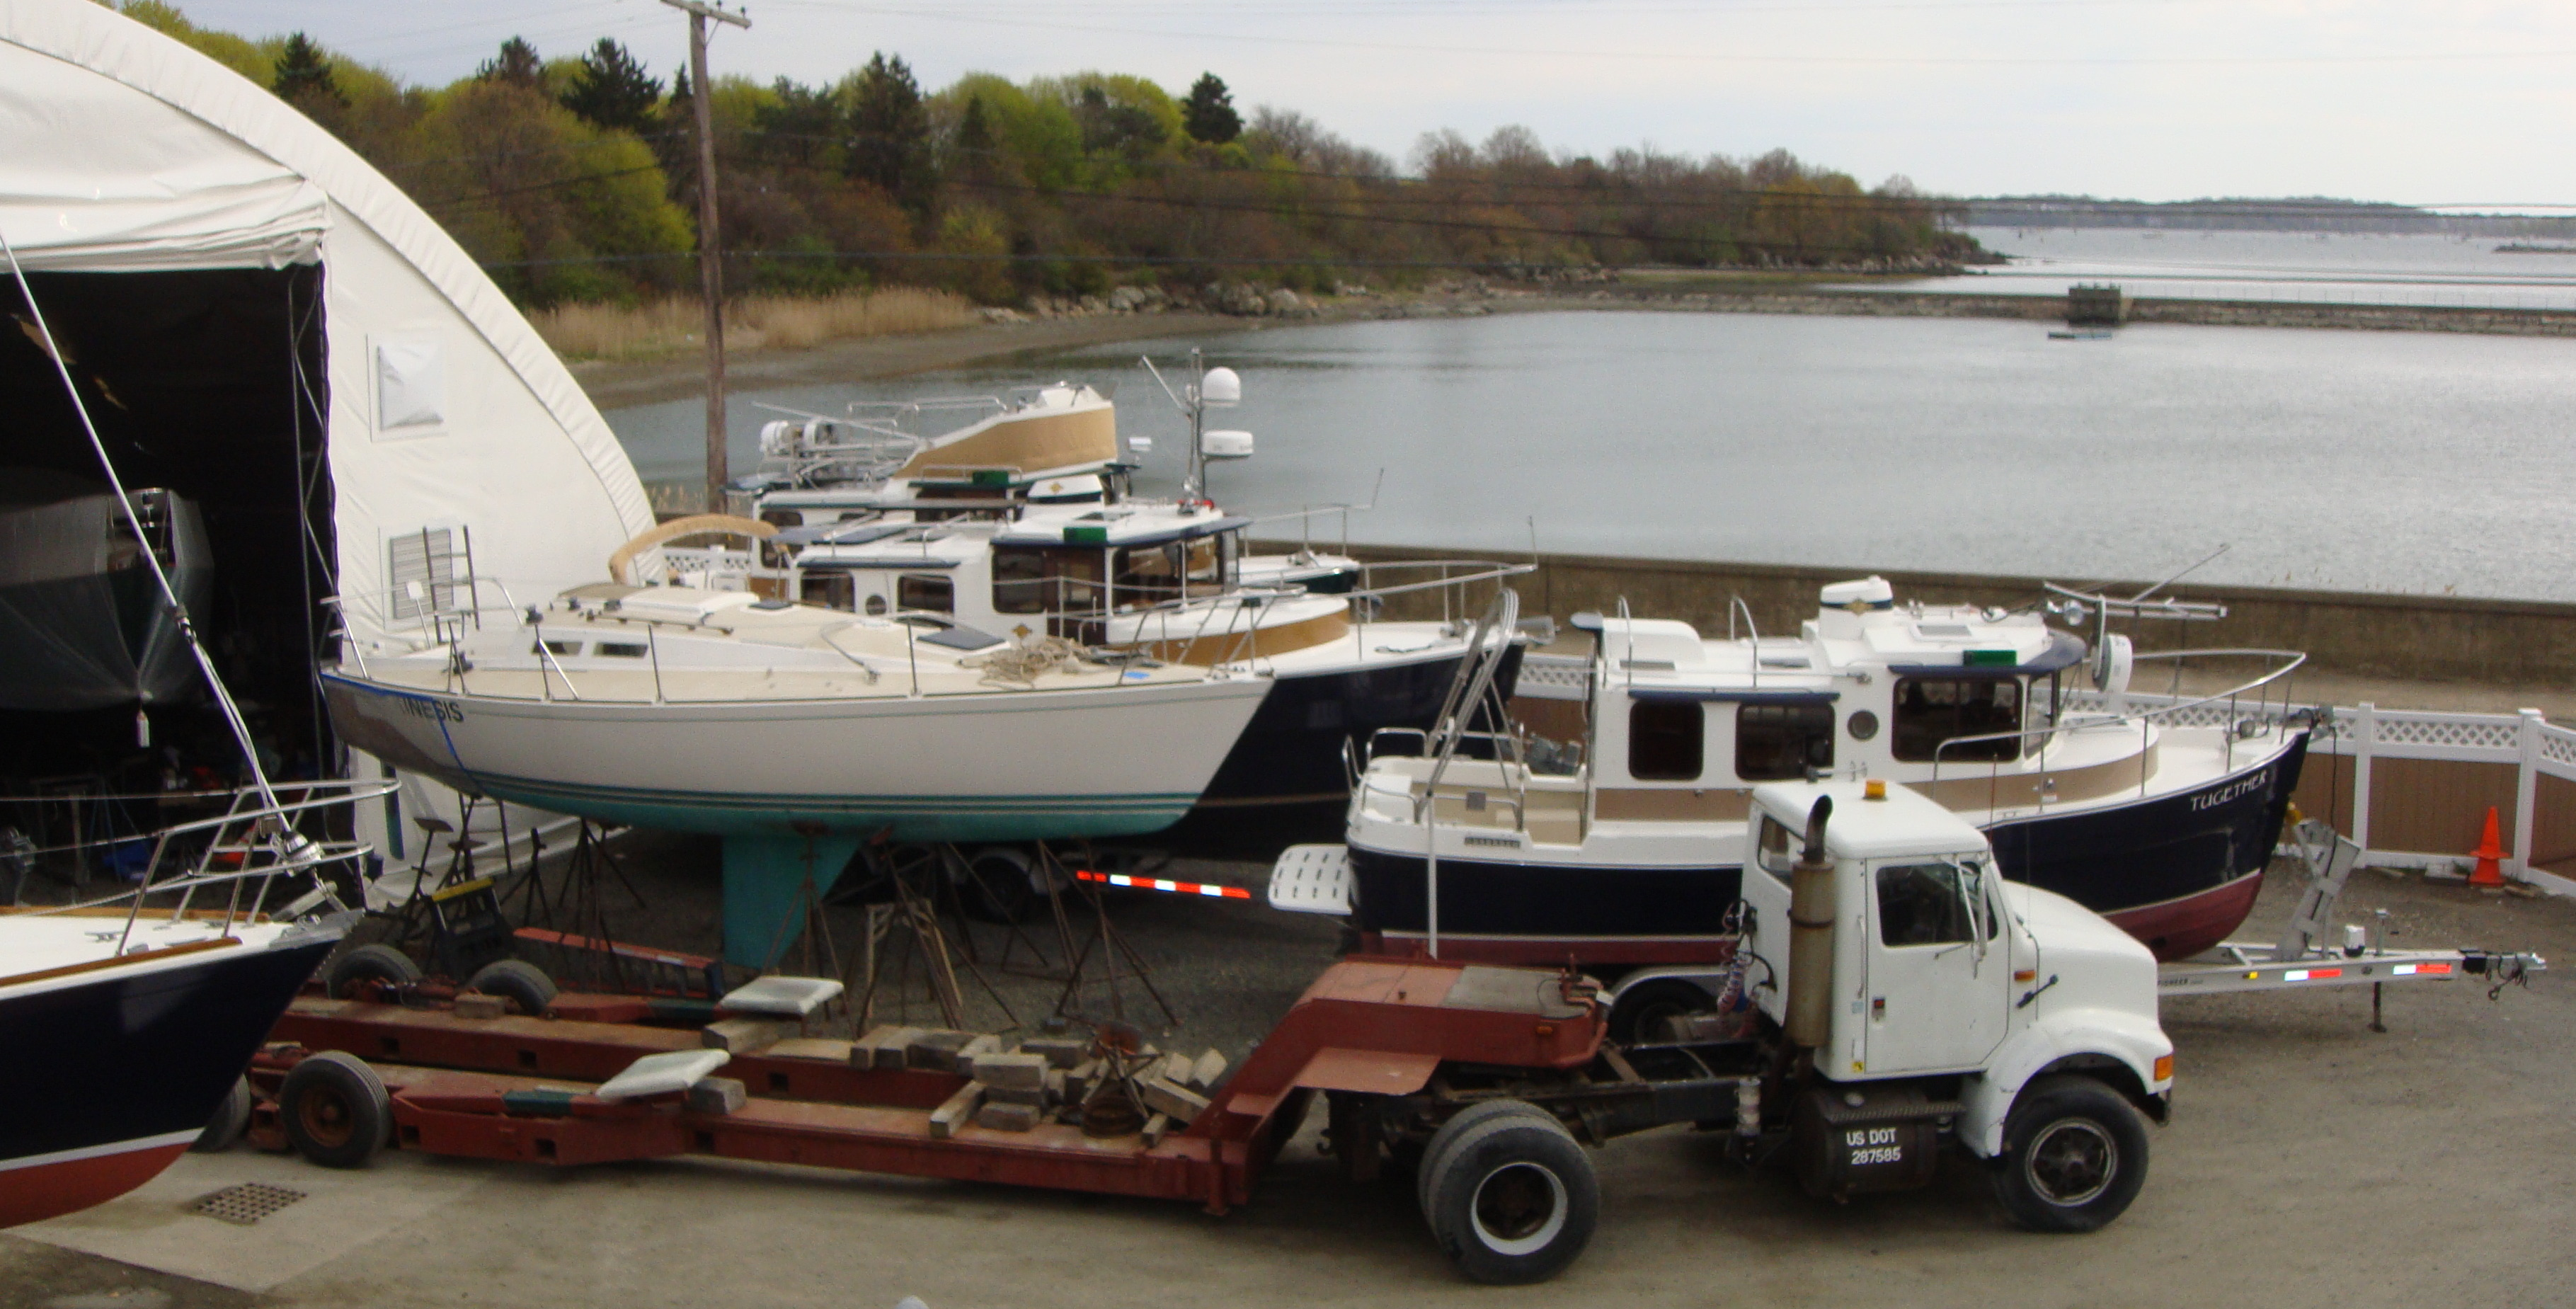 Winter Island Yacht Yard, a Full-Service Boat Yard